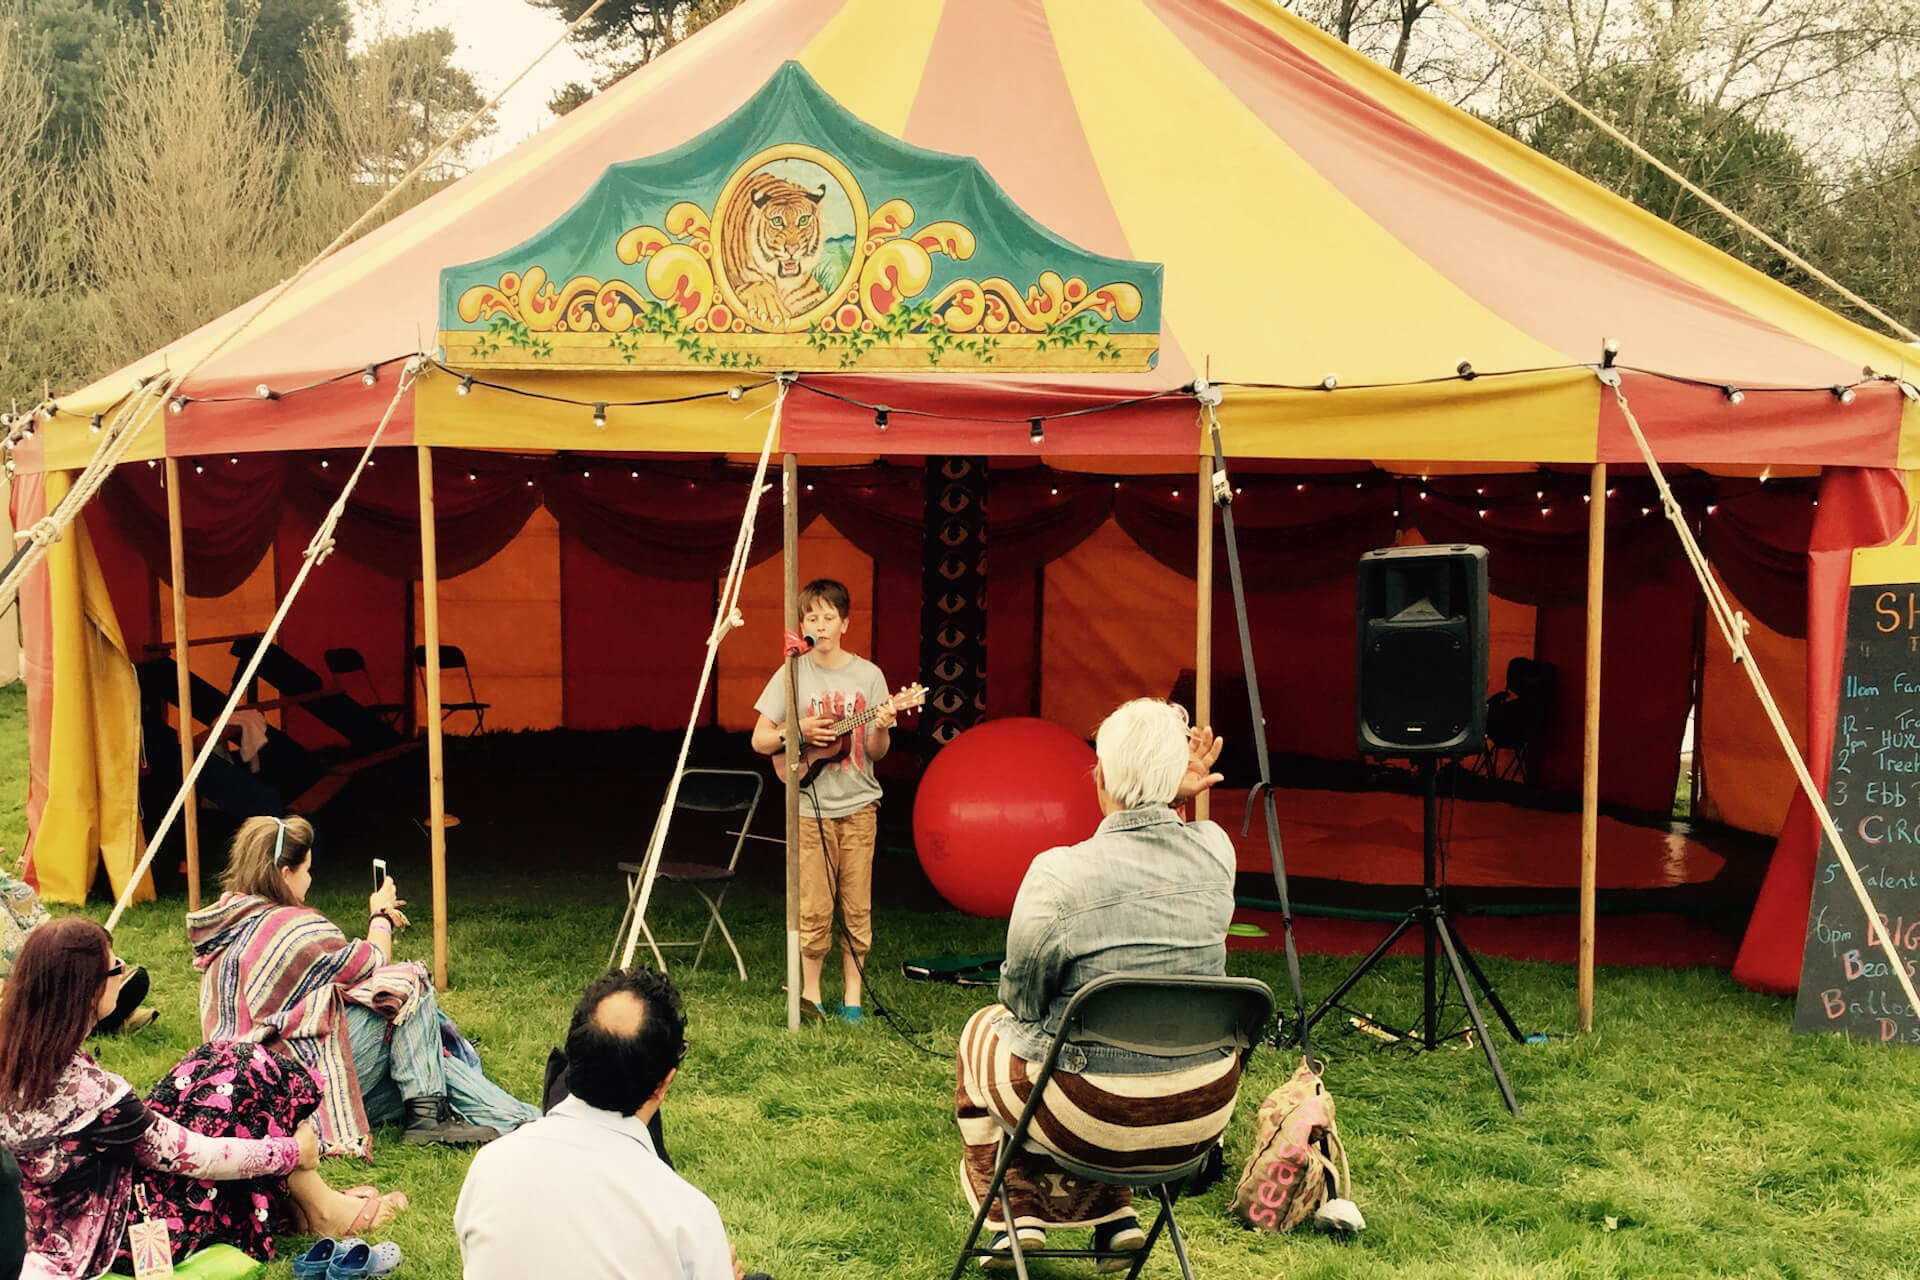 A young singer performs in front of circus tent